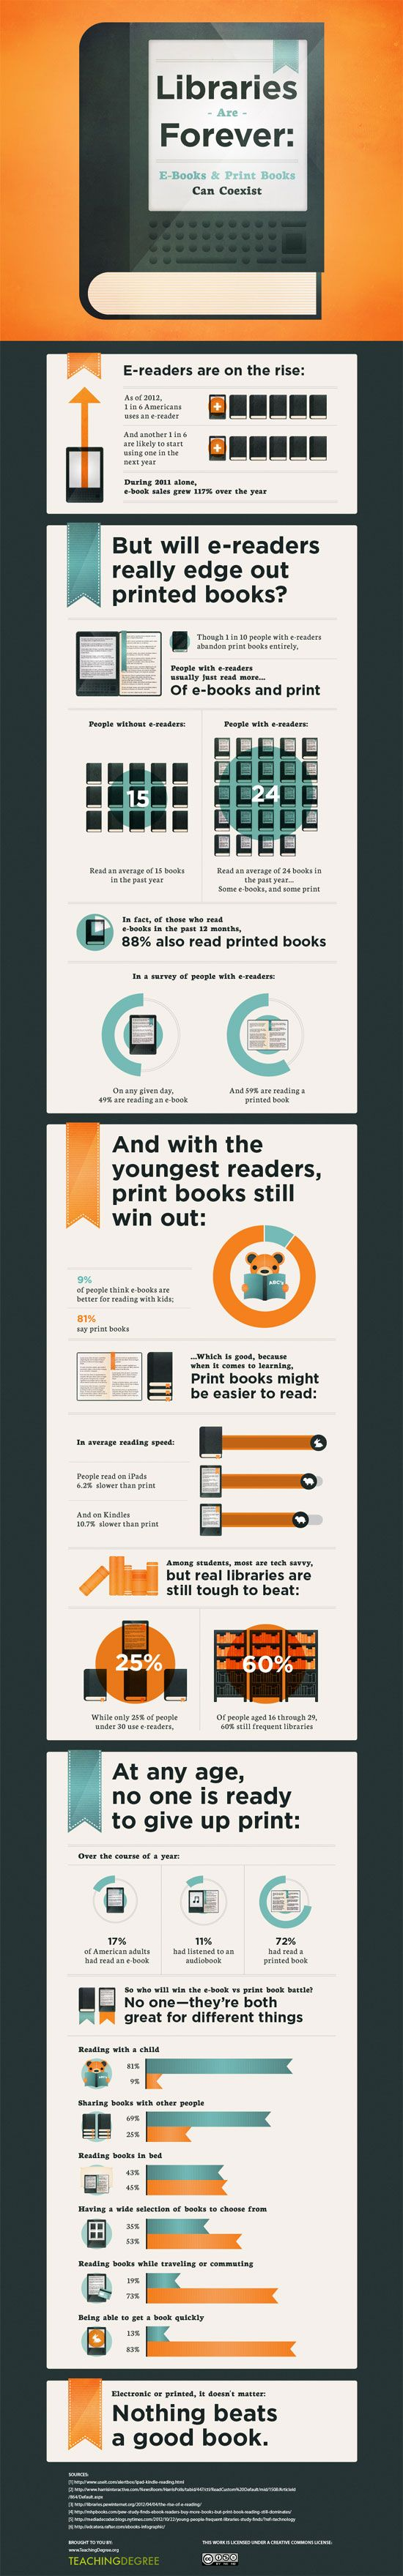 Interesting Statistics On The Coexistence Of Ebooks And Print Books Via  @swissarmylib